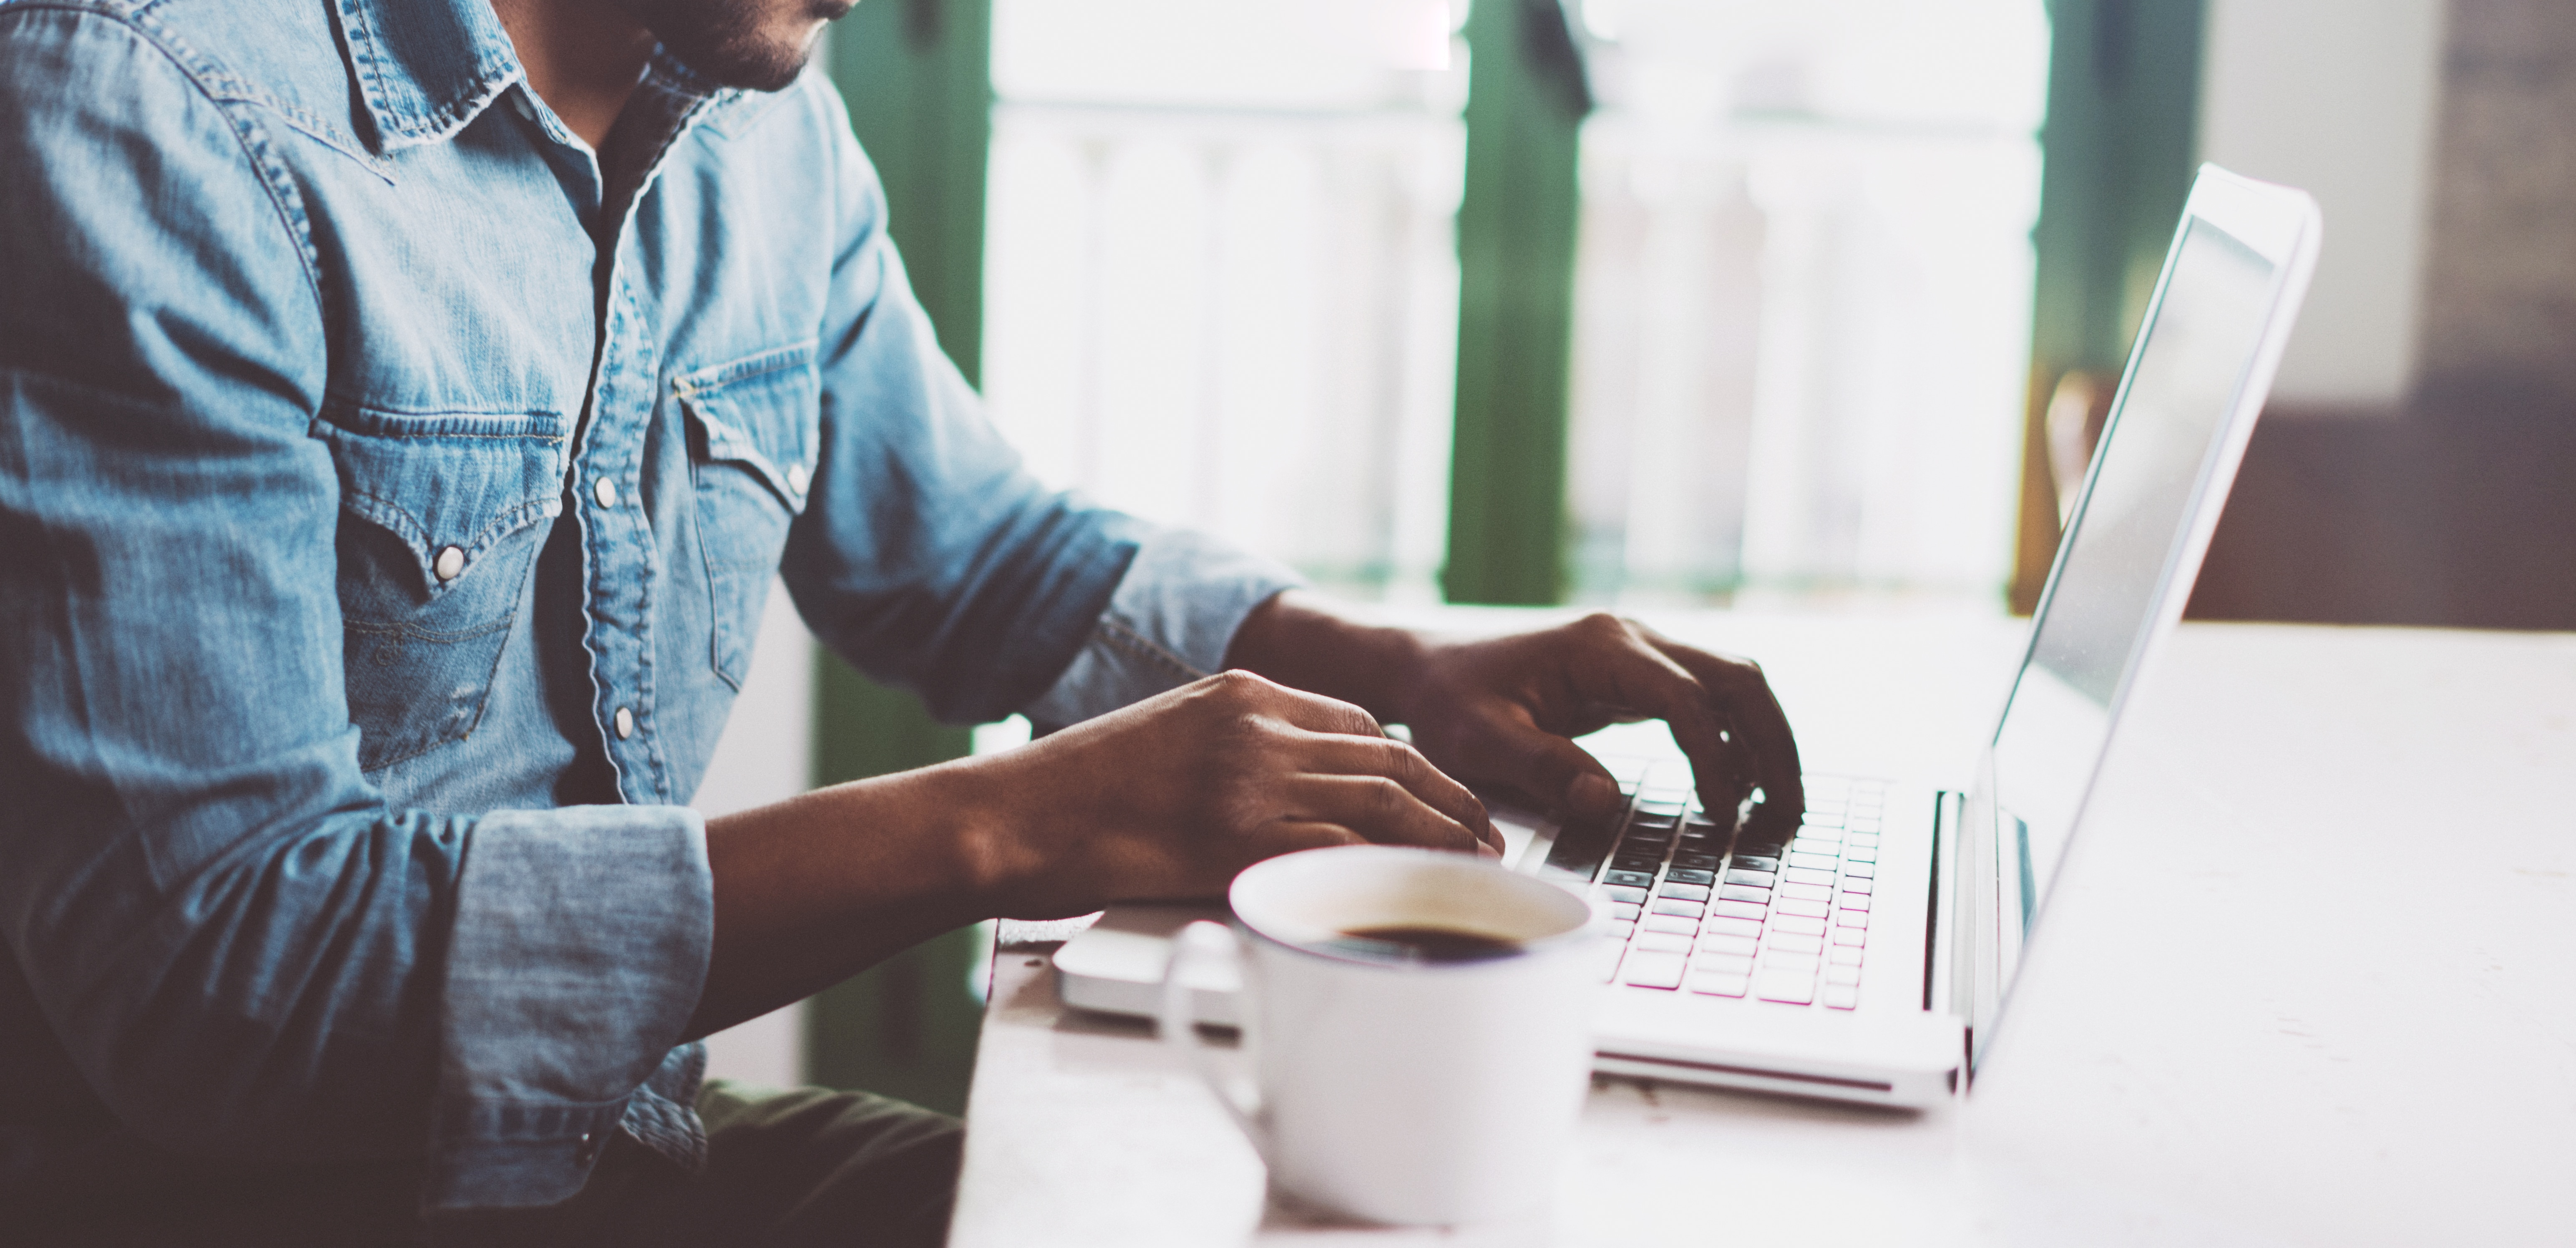 5 Reasons Church Online Might Be a Distraction to Your Church's Vision